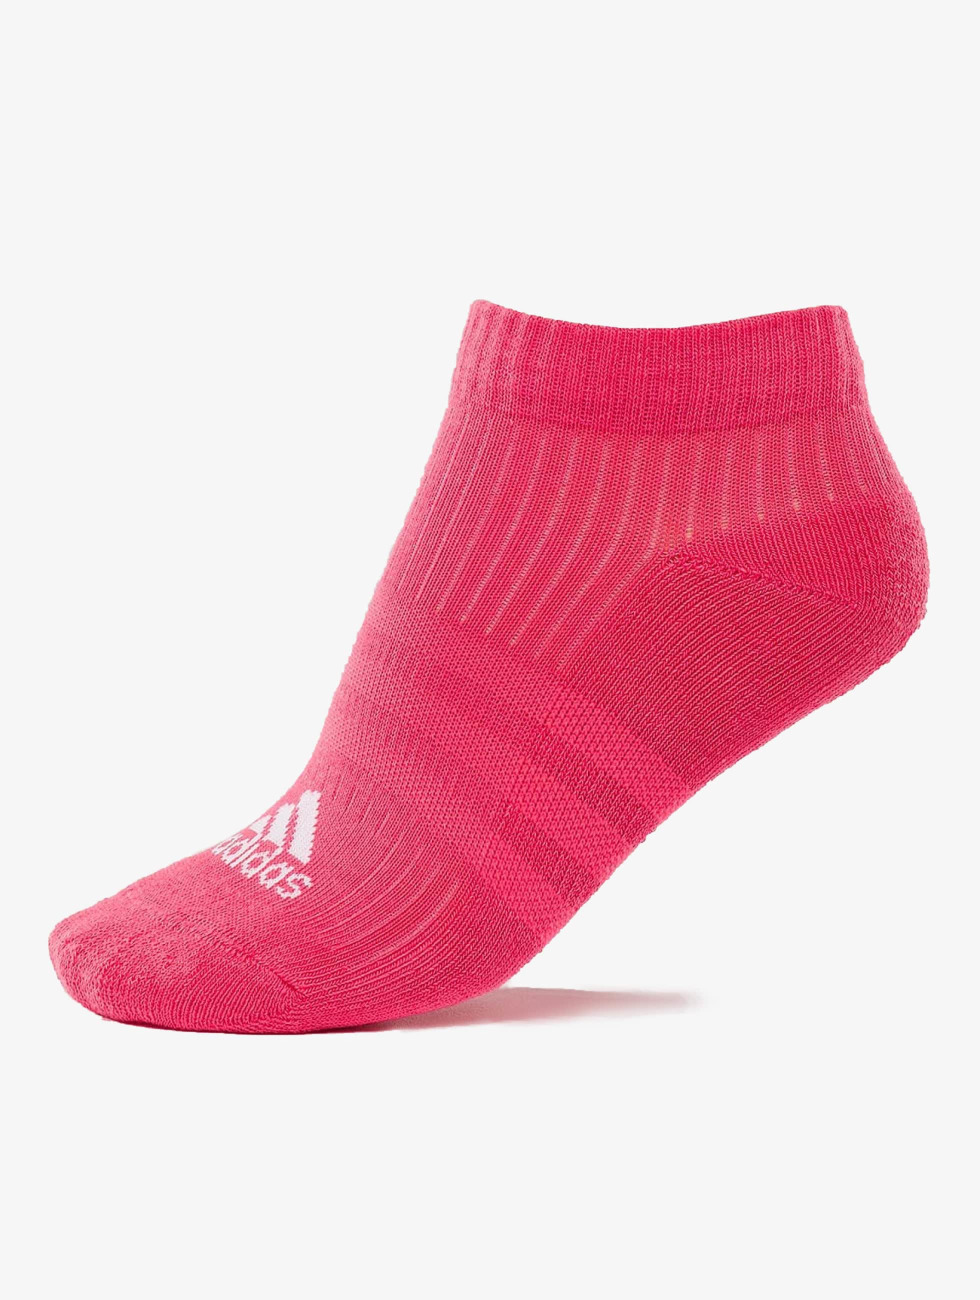 adidas originals Socks 3-Stripes Per n-s HS 3-Pairs pink